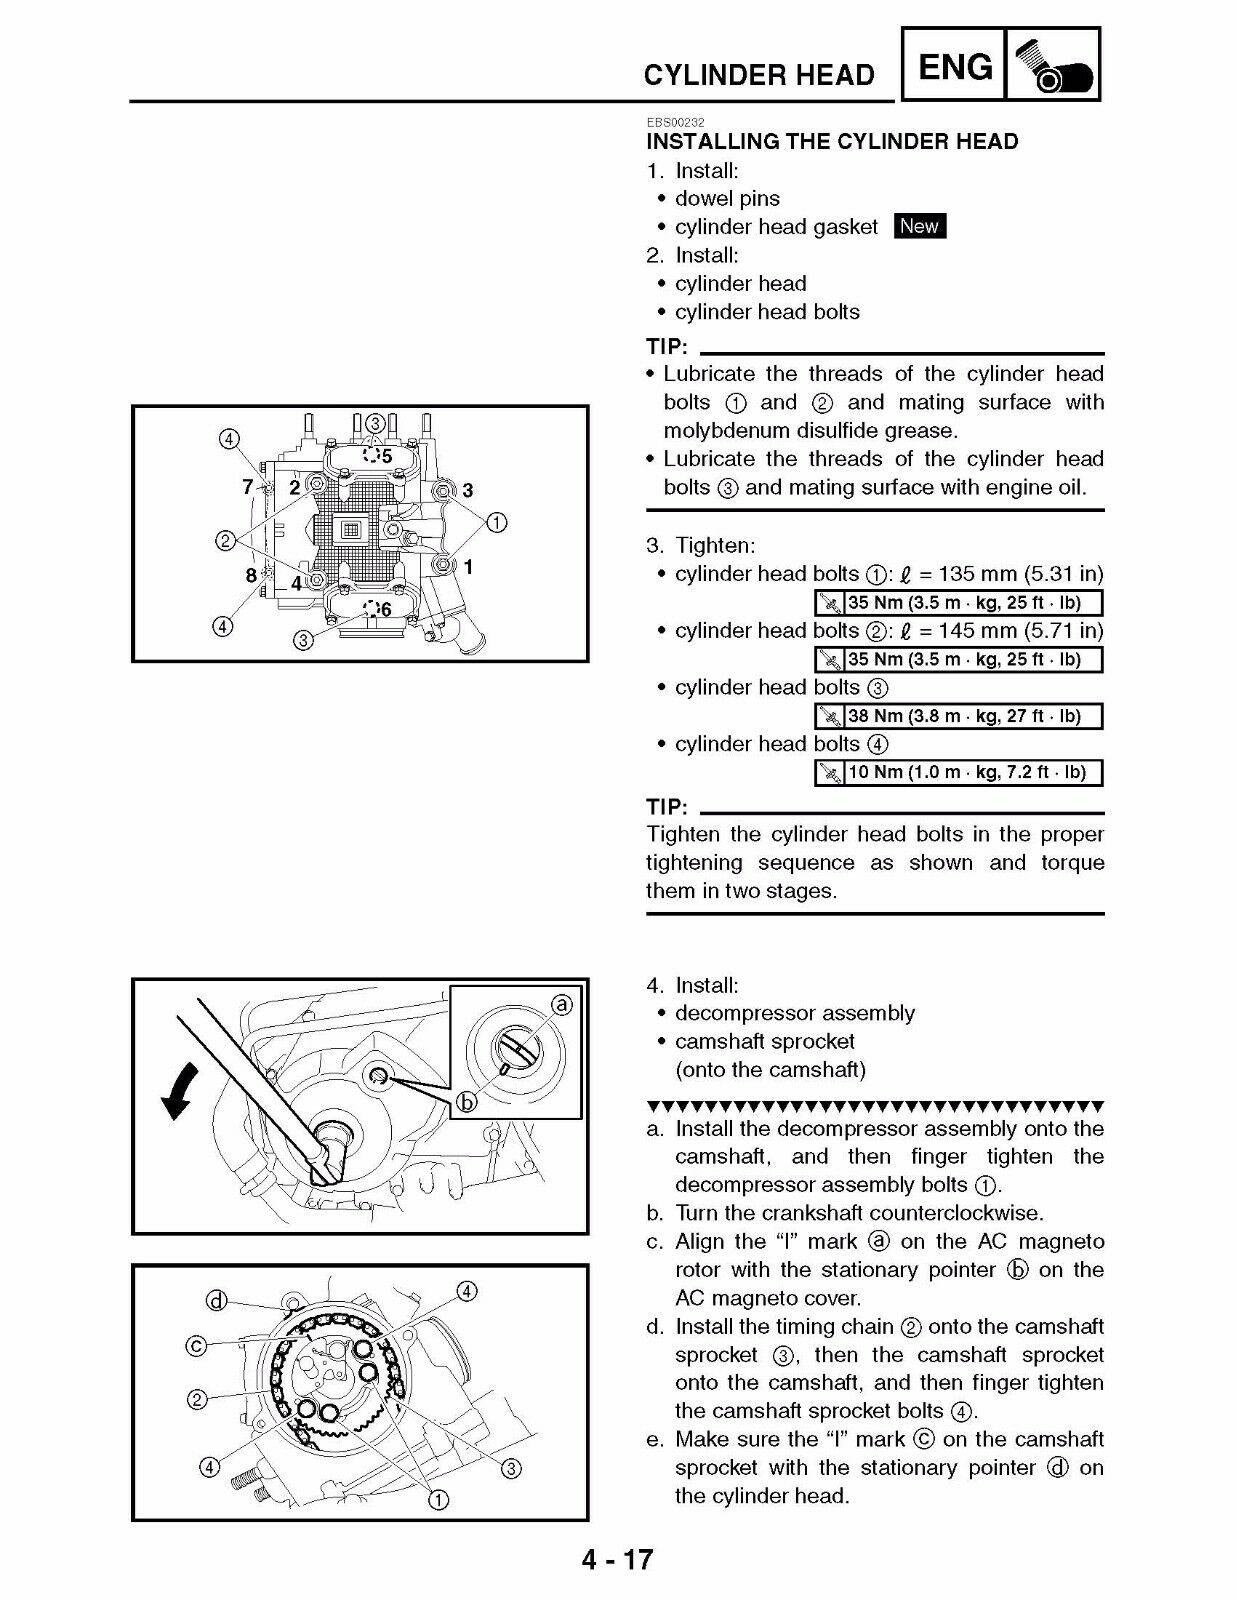 2008 Yamaha Rhino Wiring Diagram Simple Guide About Electrical Ford E Headlight Diagrams Schematic Fuse Block